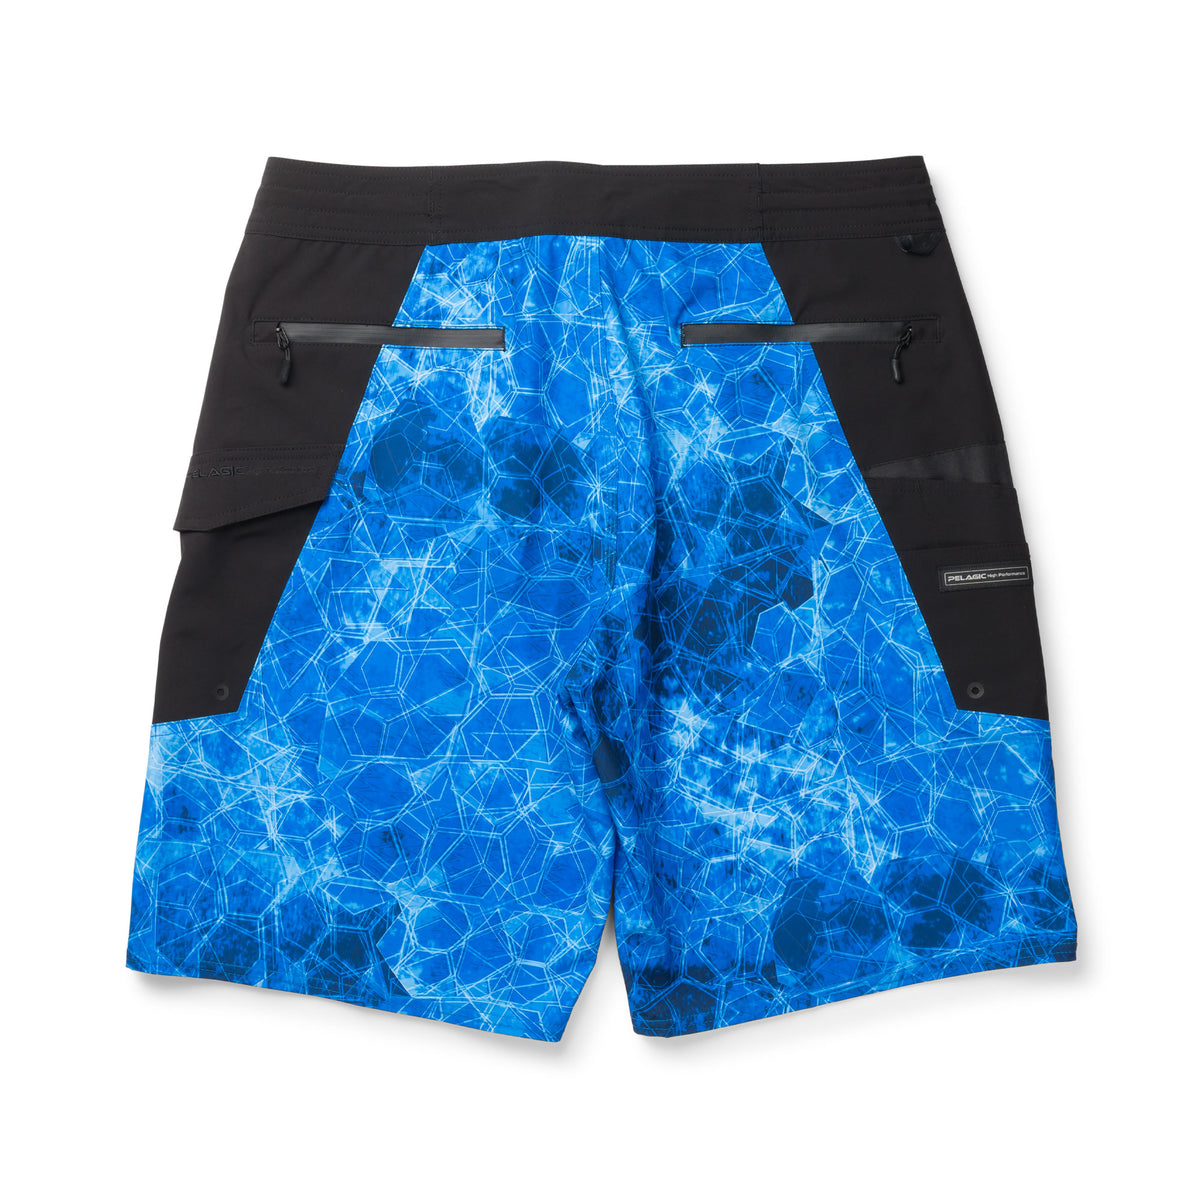 Ocean Master Fishing Shorts Big Image - 2